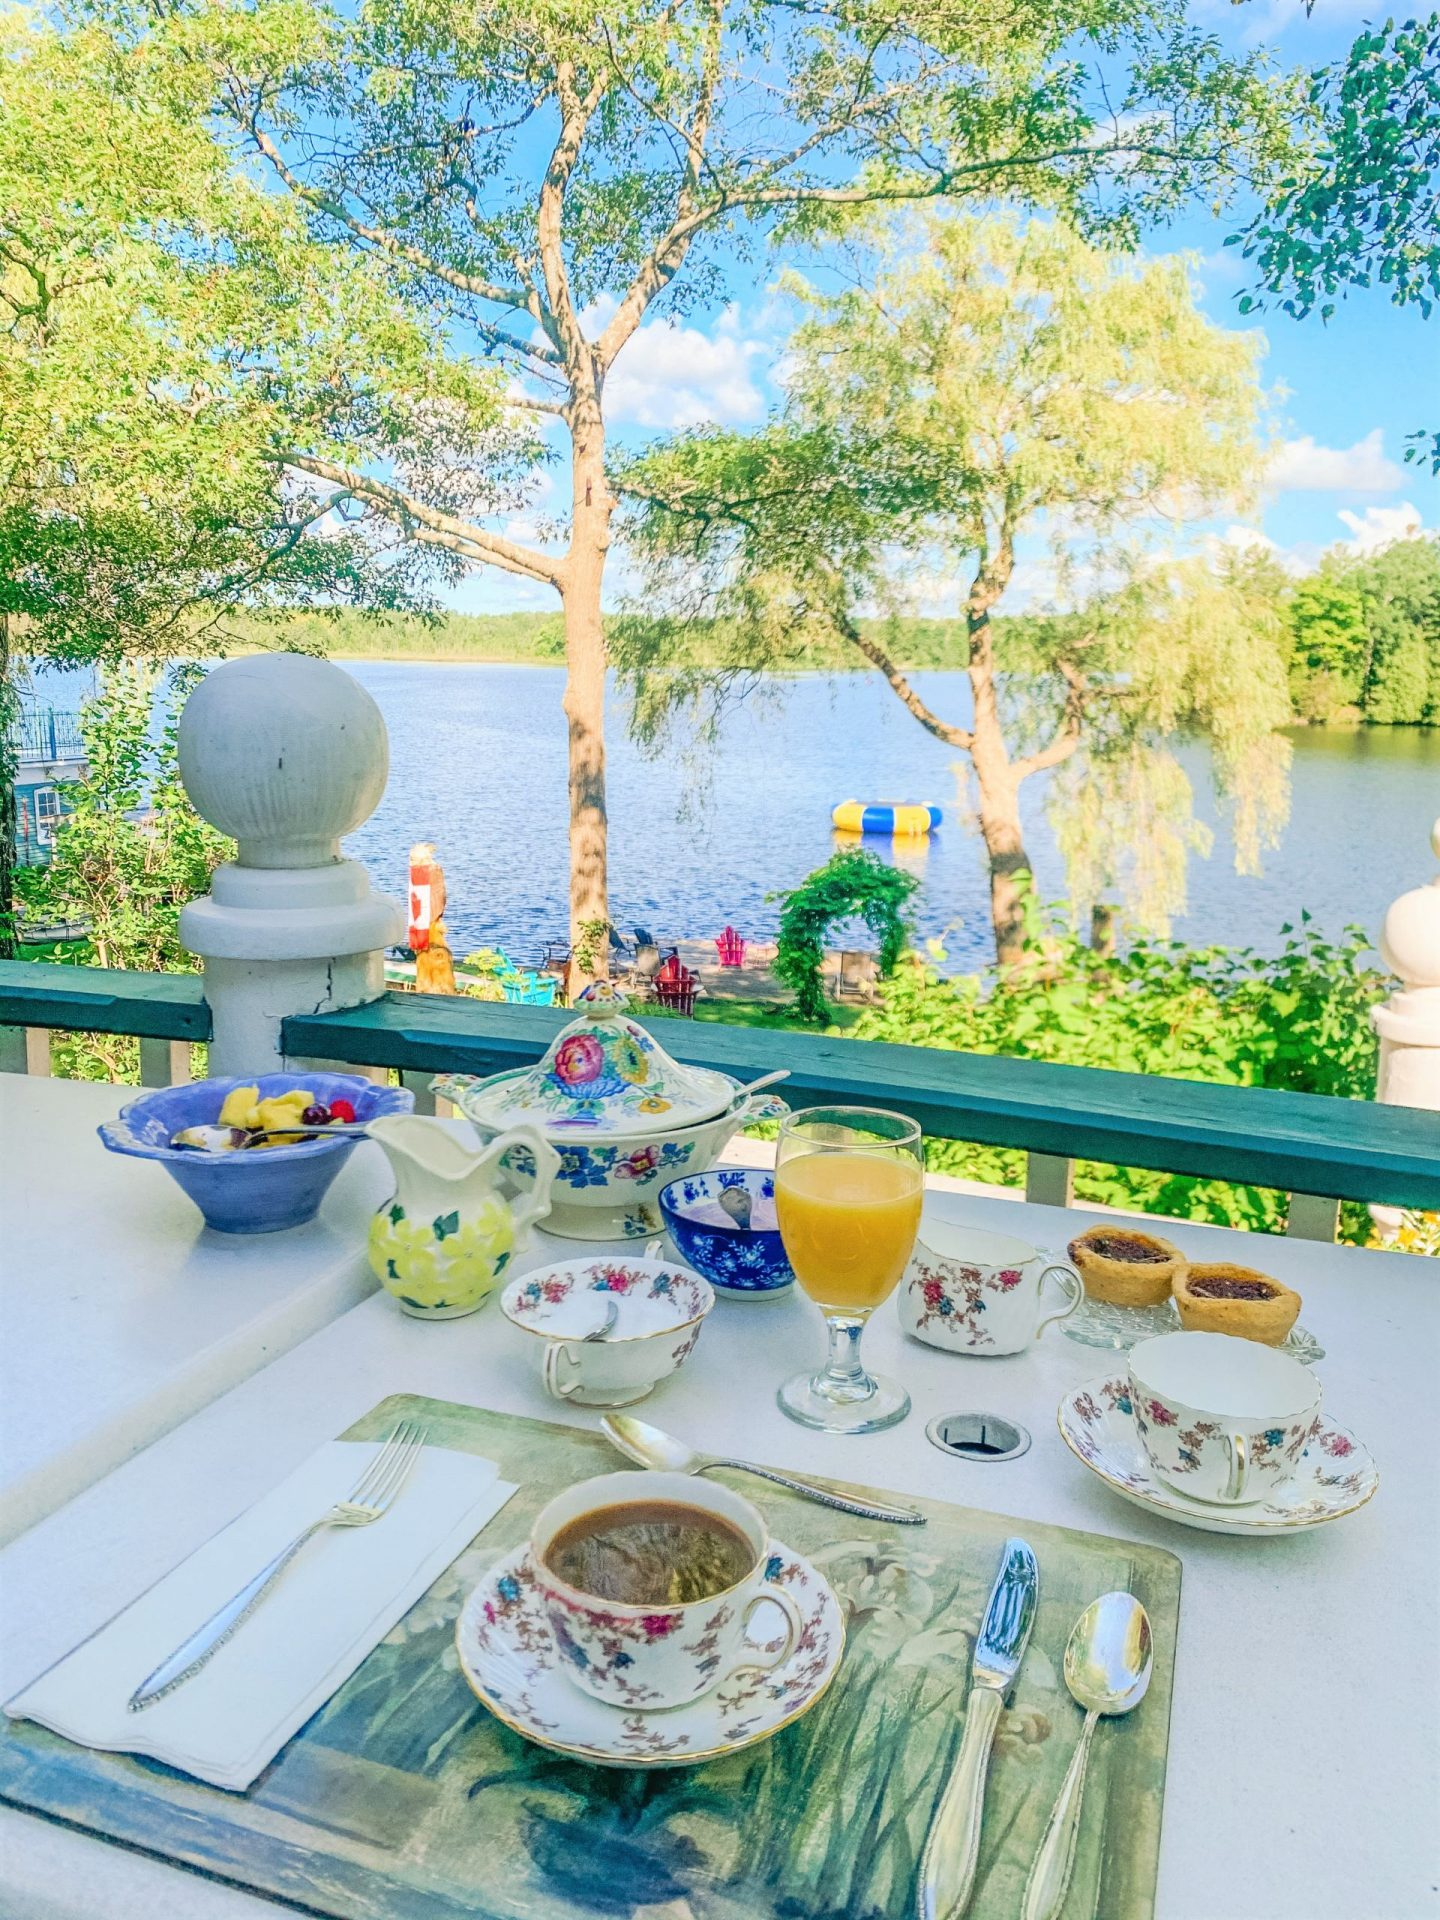 Windswept on the Trent Accommodation is secluded and very peaceful. Breakfast views were incredible